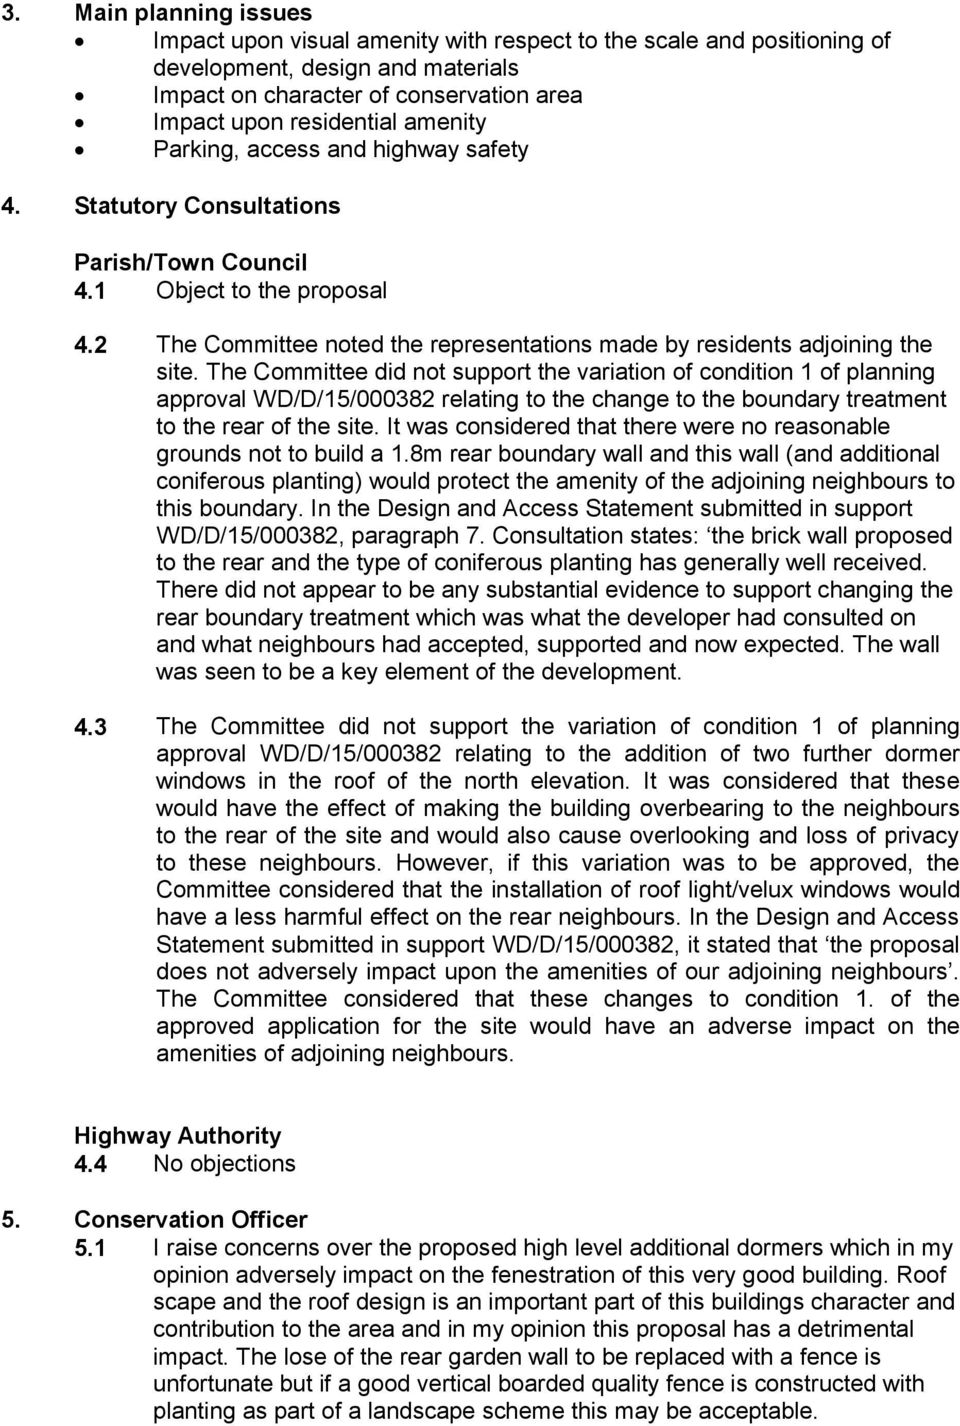 The Committee did not support the variation of condition 1 of planning approval WD/D/15/000382 relating to the change to the boundary treatment to the rear of the site.